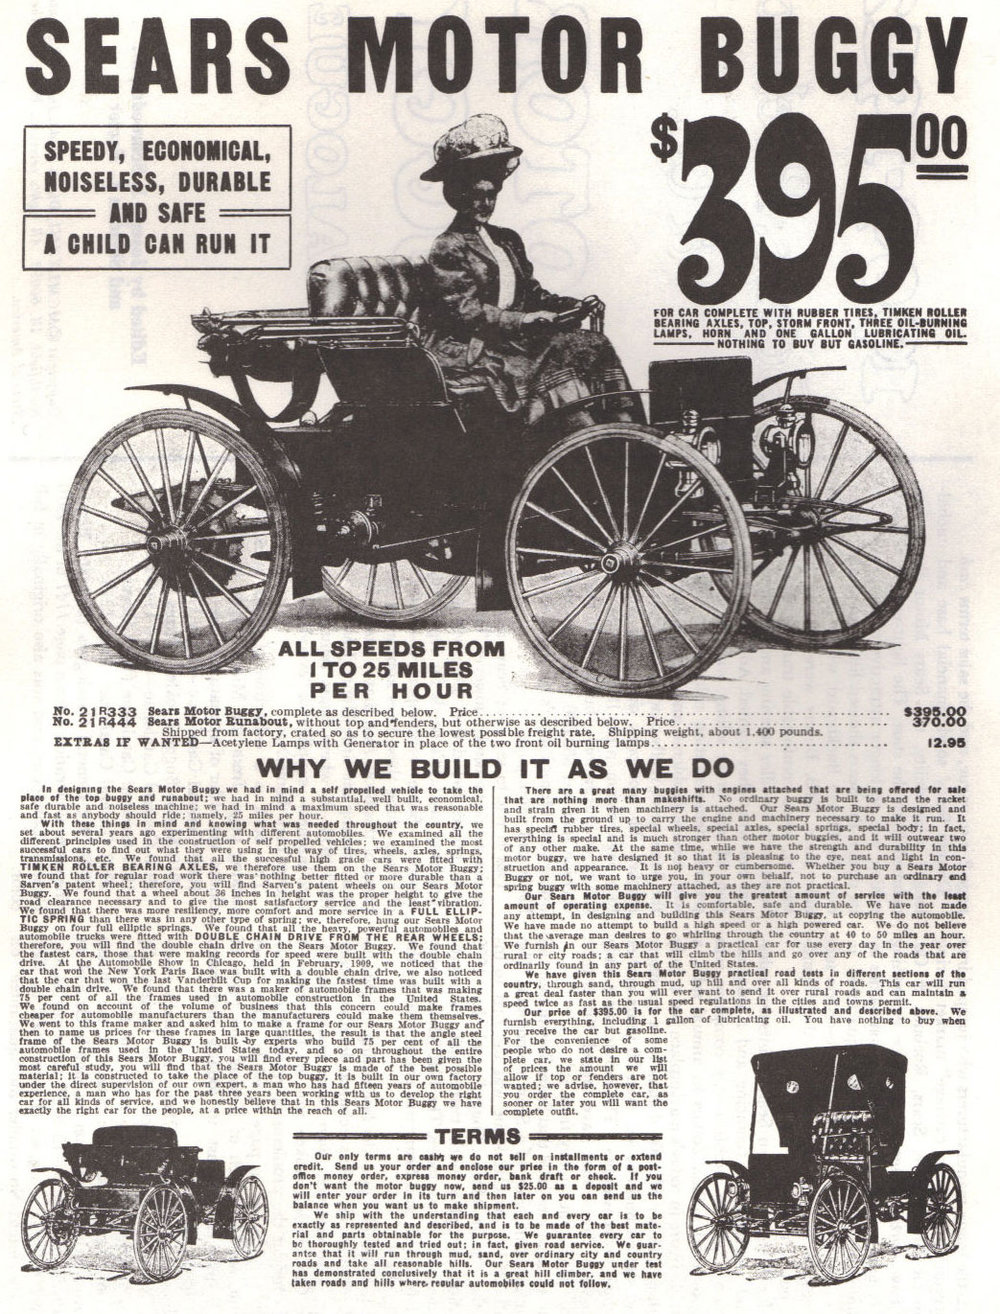 Sears-Motor-Buggy-advert.jpg